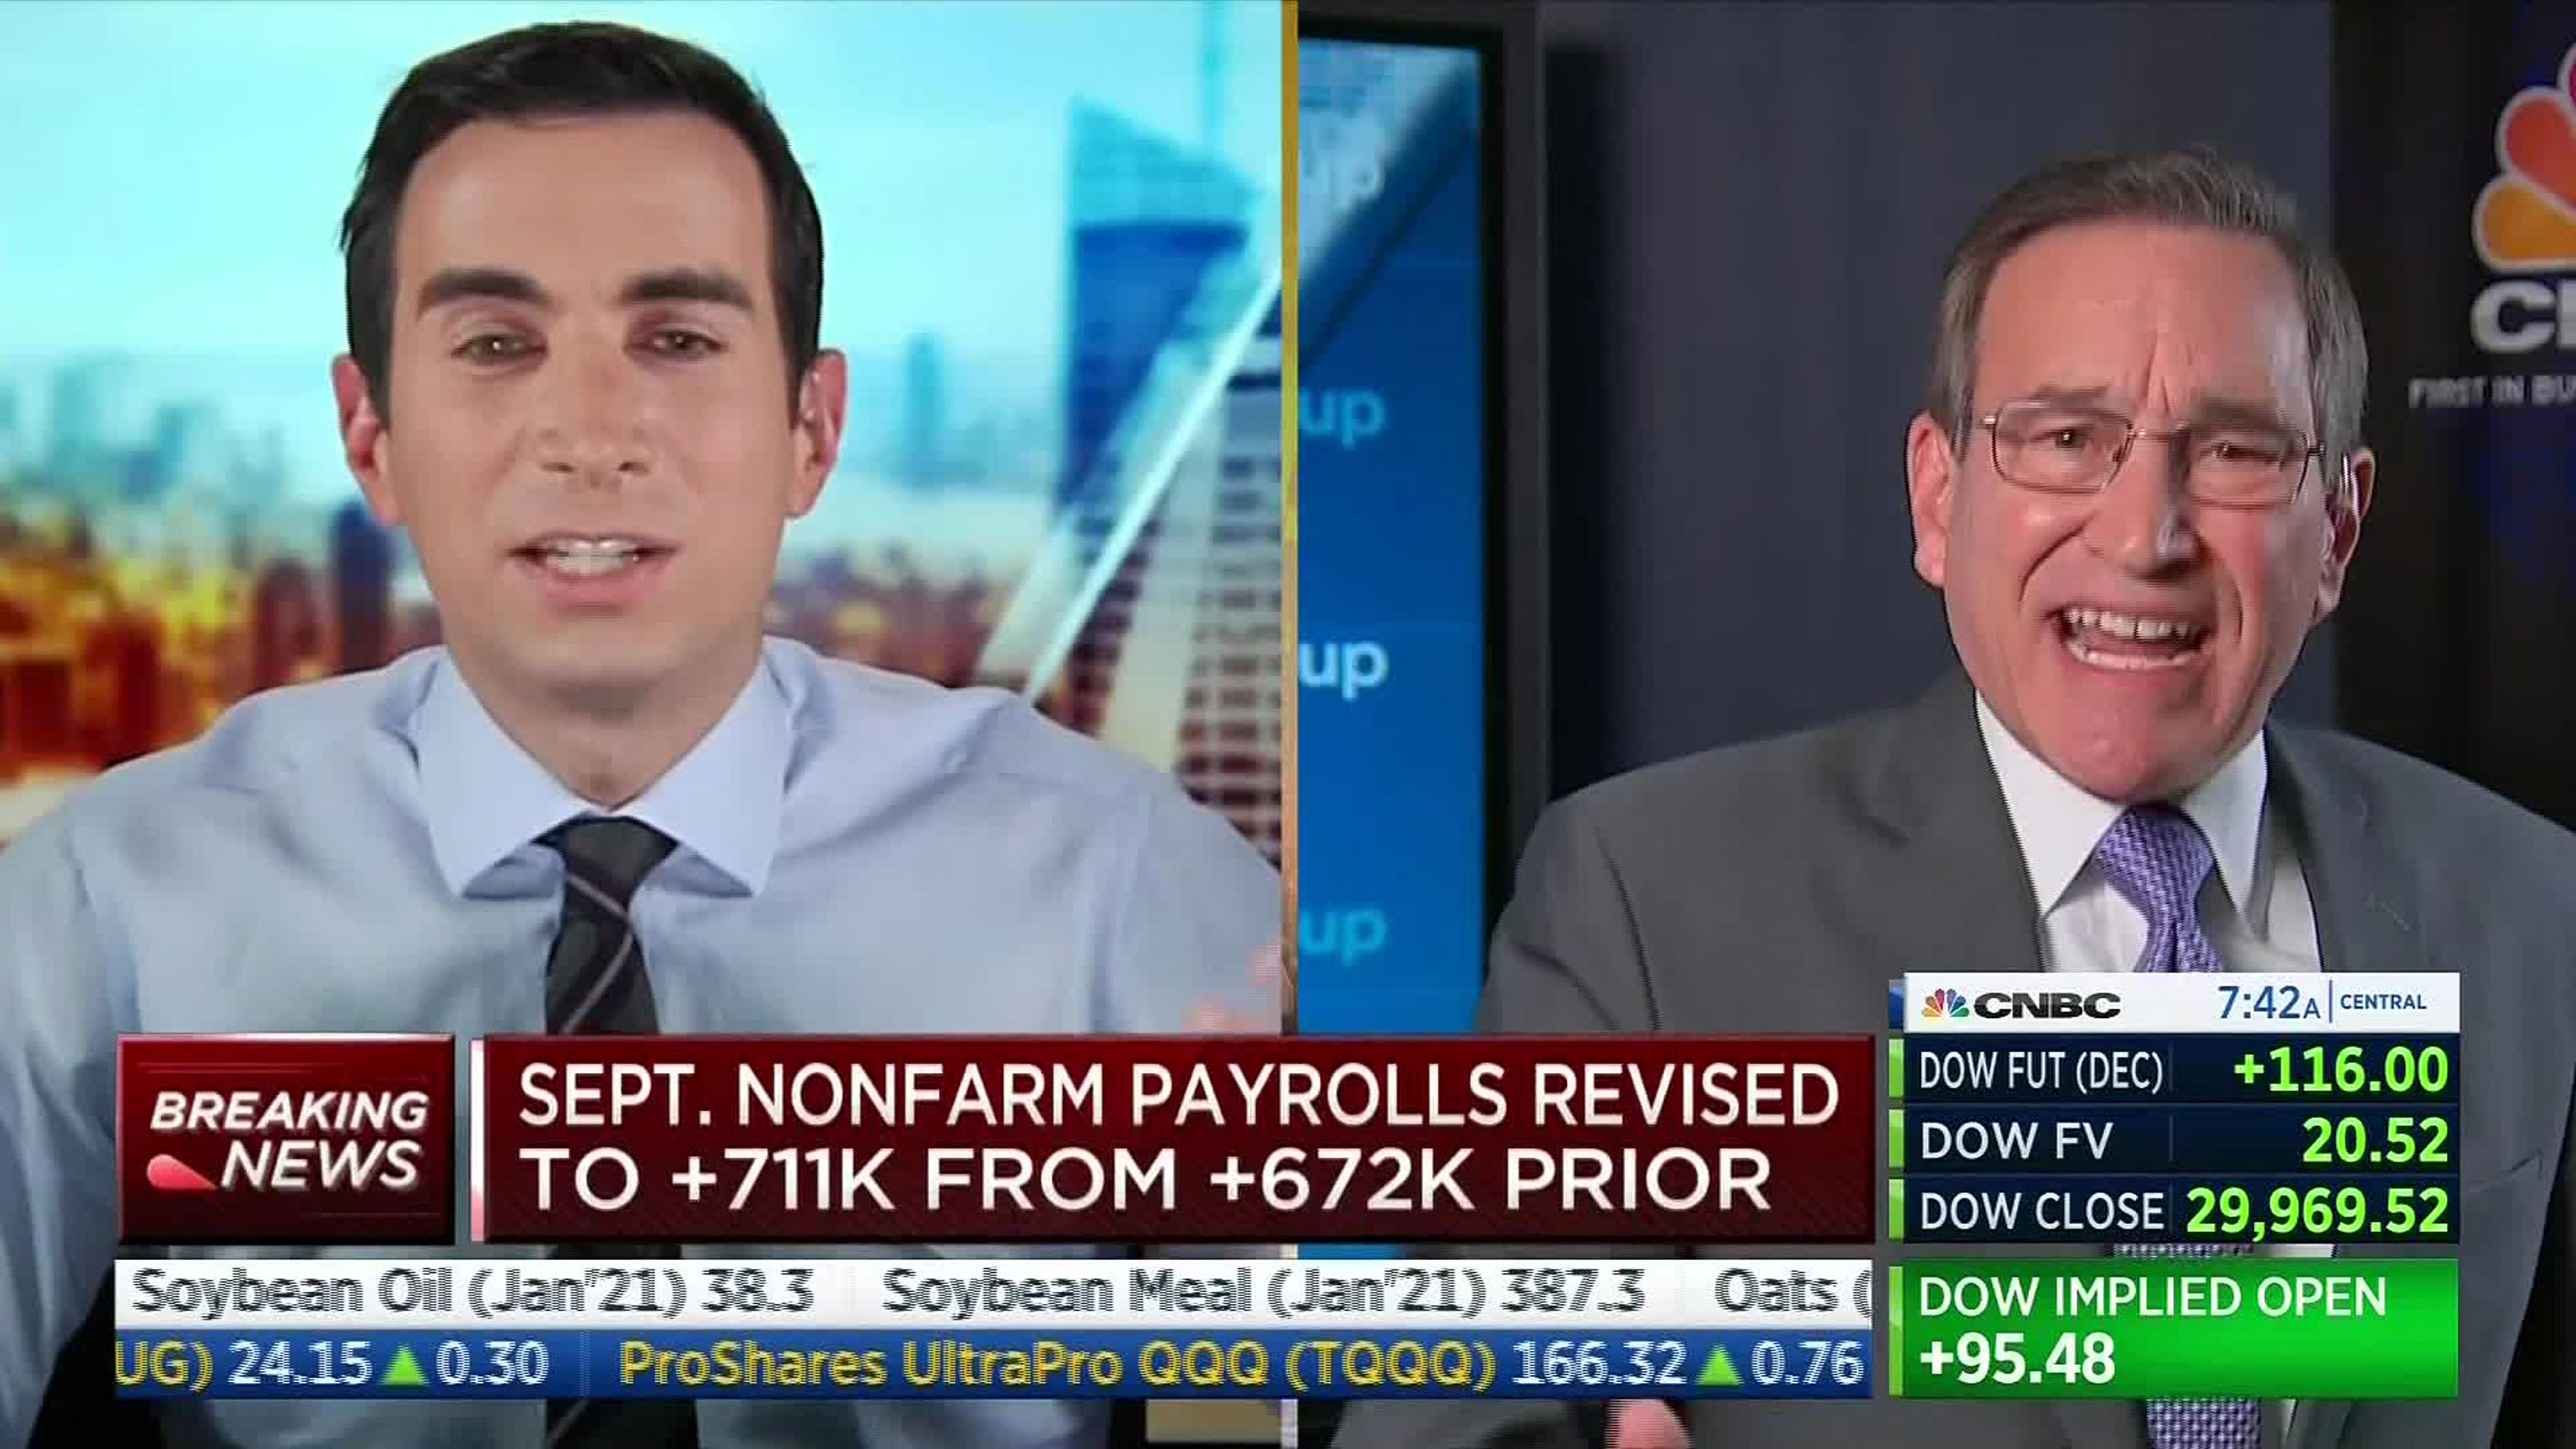 CNBC's Rick Santelli starts shouting match on air over Covid-19 restrictions